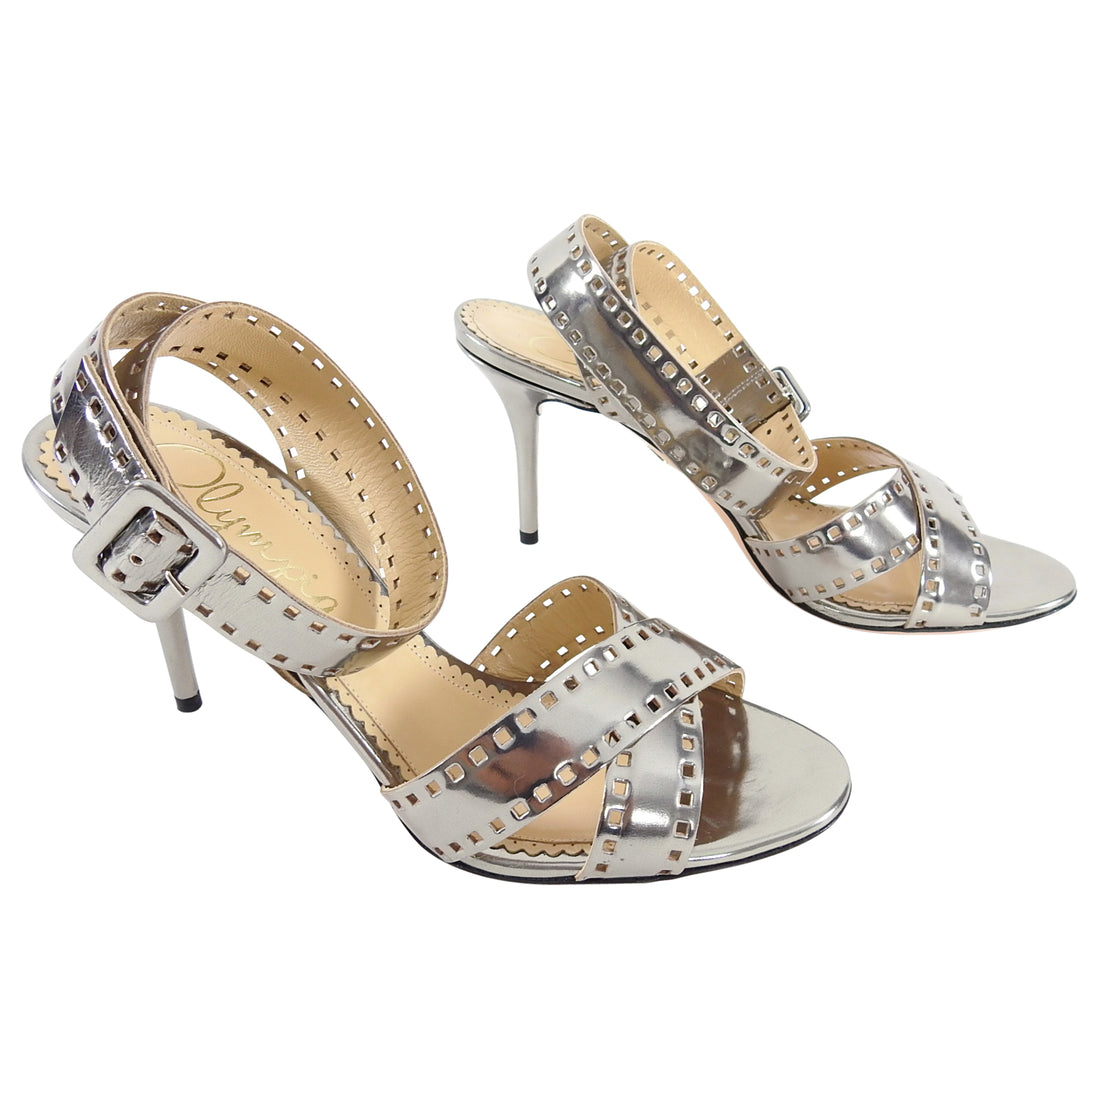 Charlotte Olympia Pewter Perforated Sandals - 38